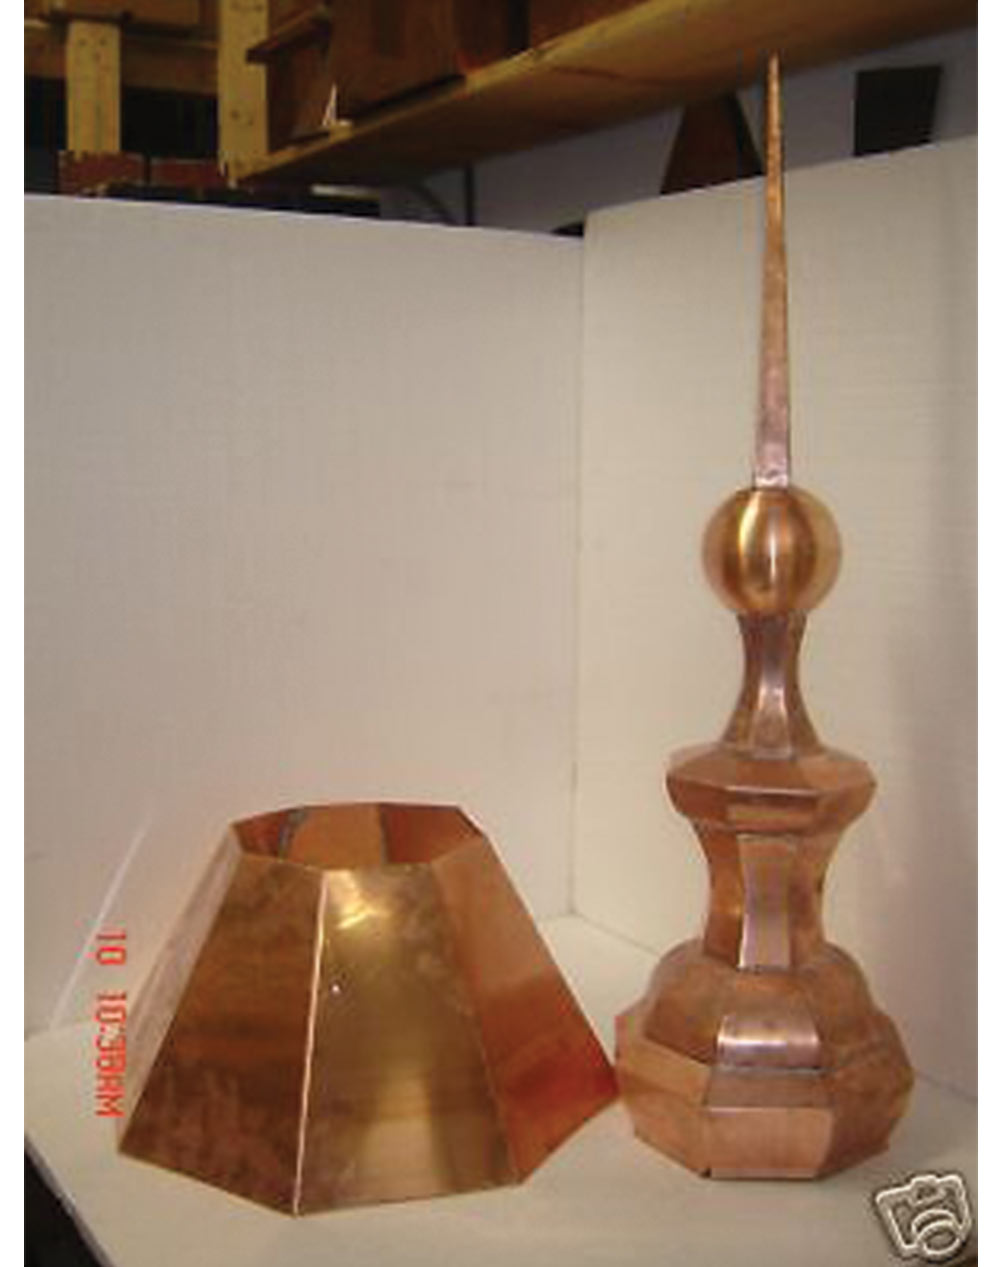 Tower Roof Turret Copper Cap Spire 8s Octagonal Or Round